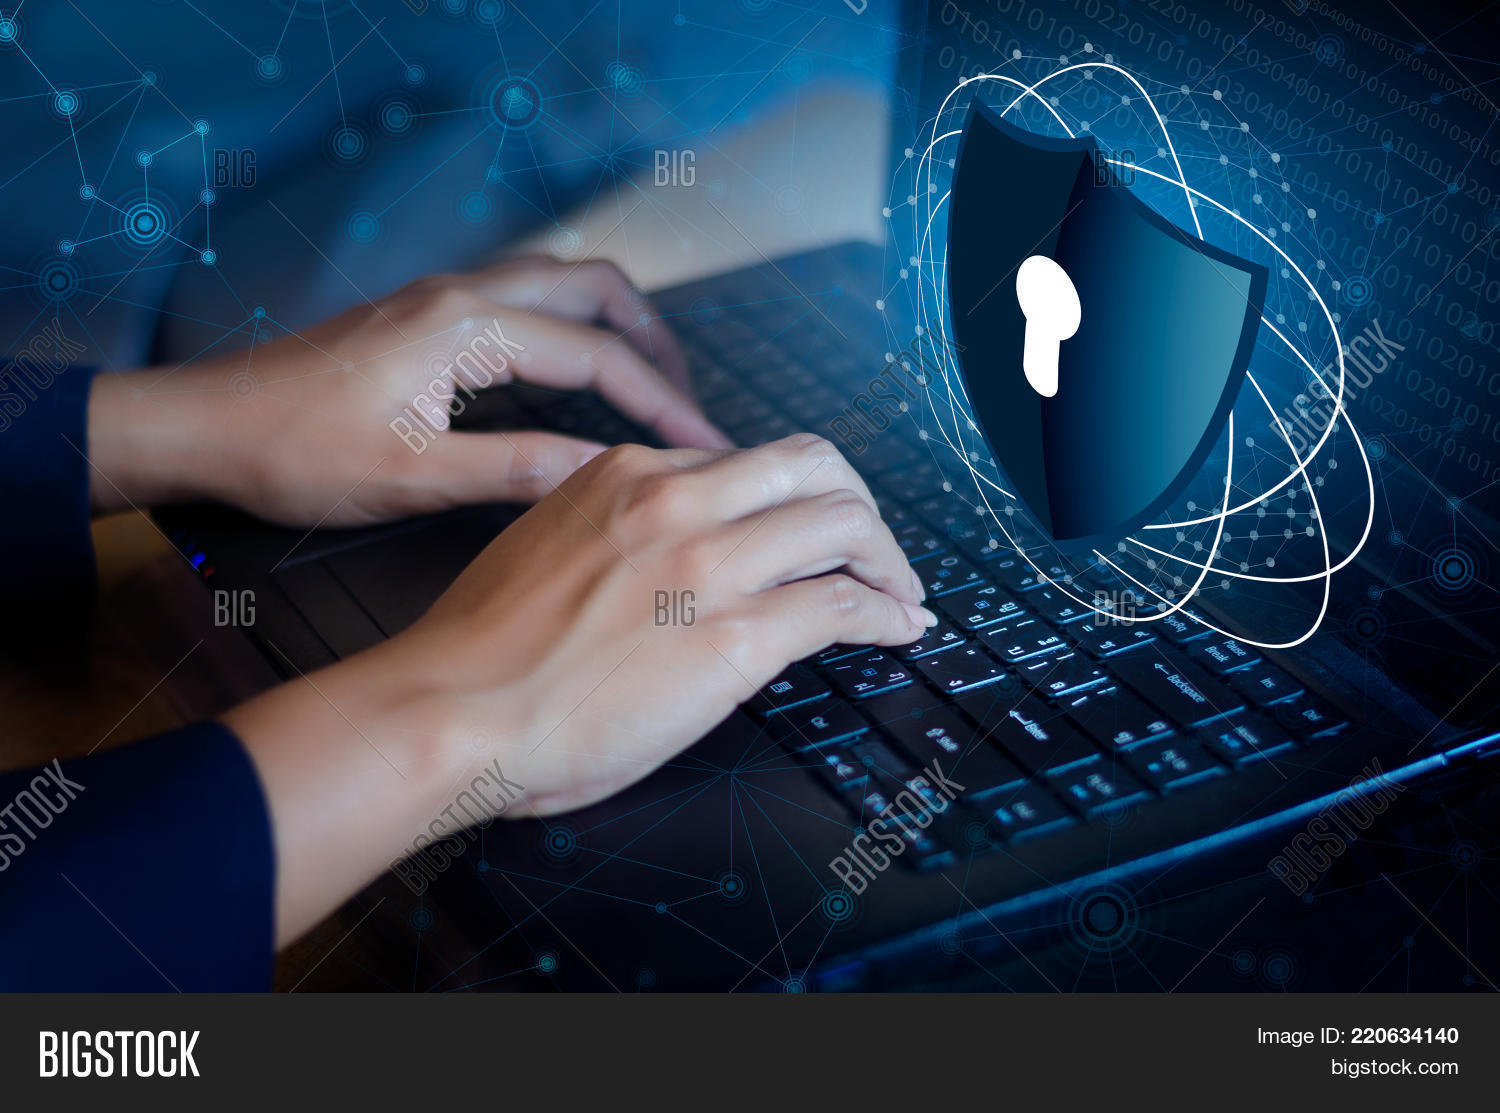 3d,access,background,binary,business,button,code,computer,concept,crime,cyber,data,design,digital,firewall,guard,hack,hacker,hole,icon,information,internet,key,keyboard,laptop,lock,monitor,network,online,padlock,password,pc,policy,privacy,protect,protection,safe,safety,screen,secure,security,shield,software,symbol,system,tech,technology,theft,virus,web